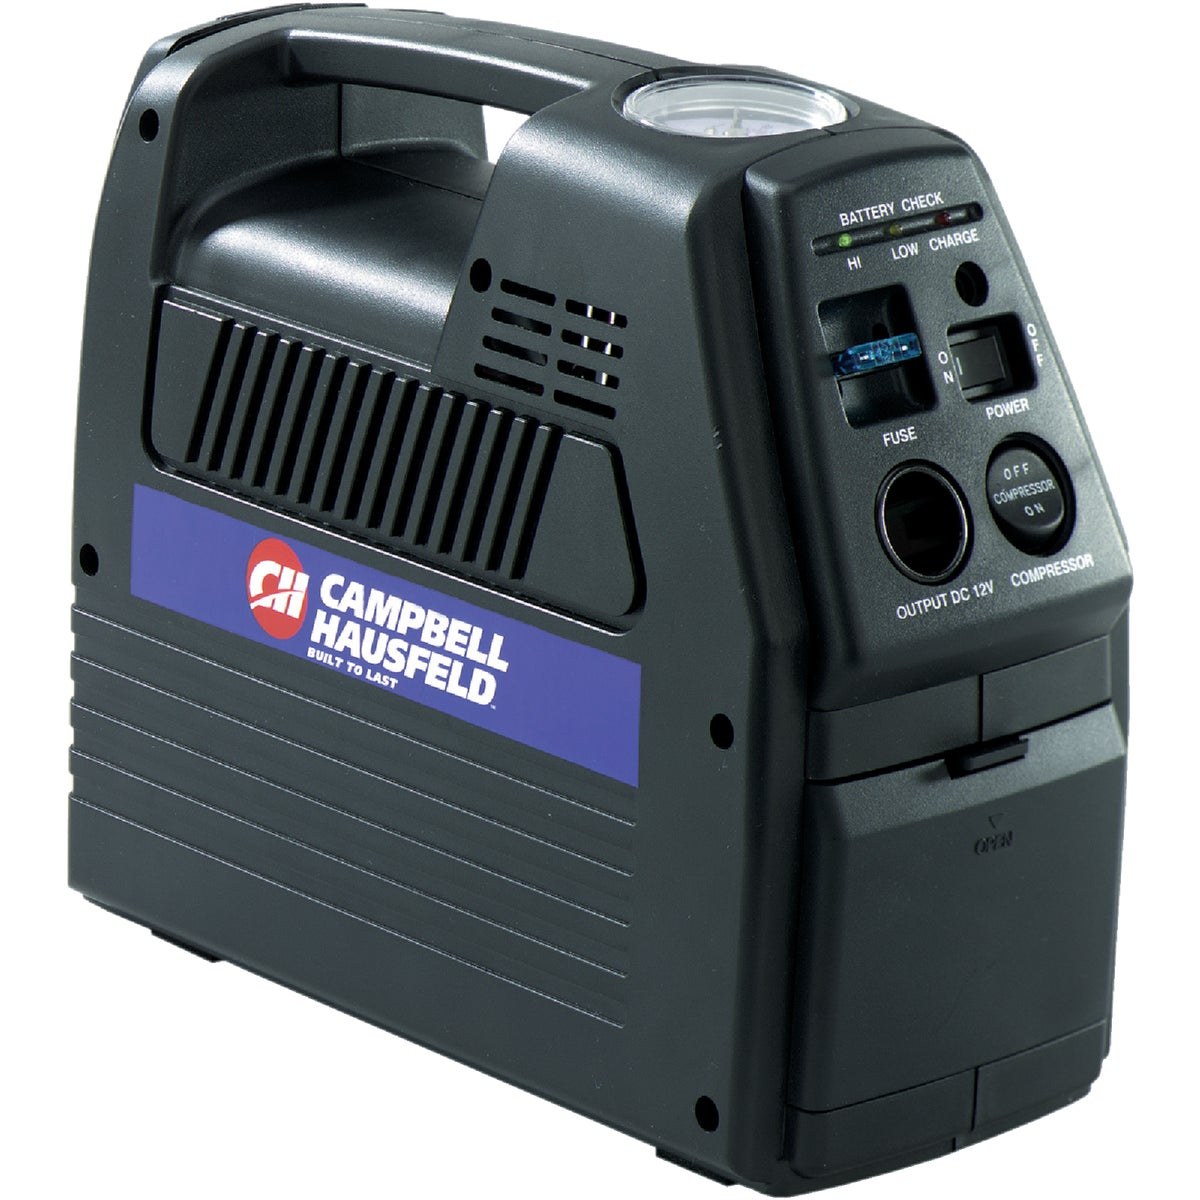 CORDLESS AIR COMPRESSOR - CC2300 by Campbell Hausfeld Co